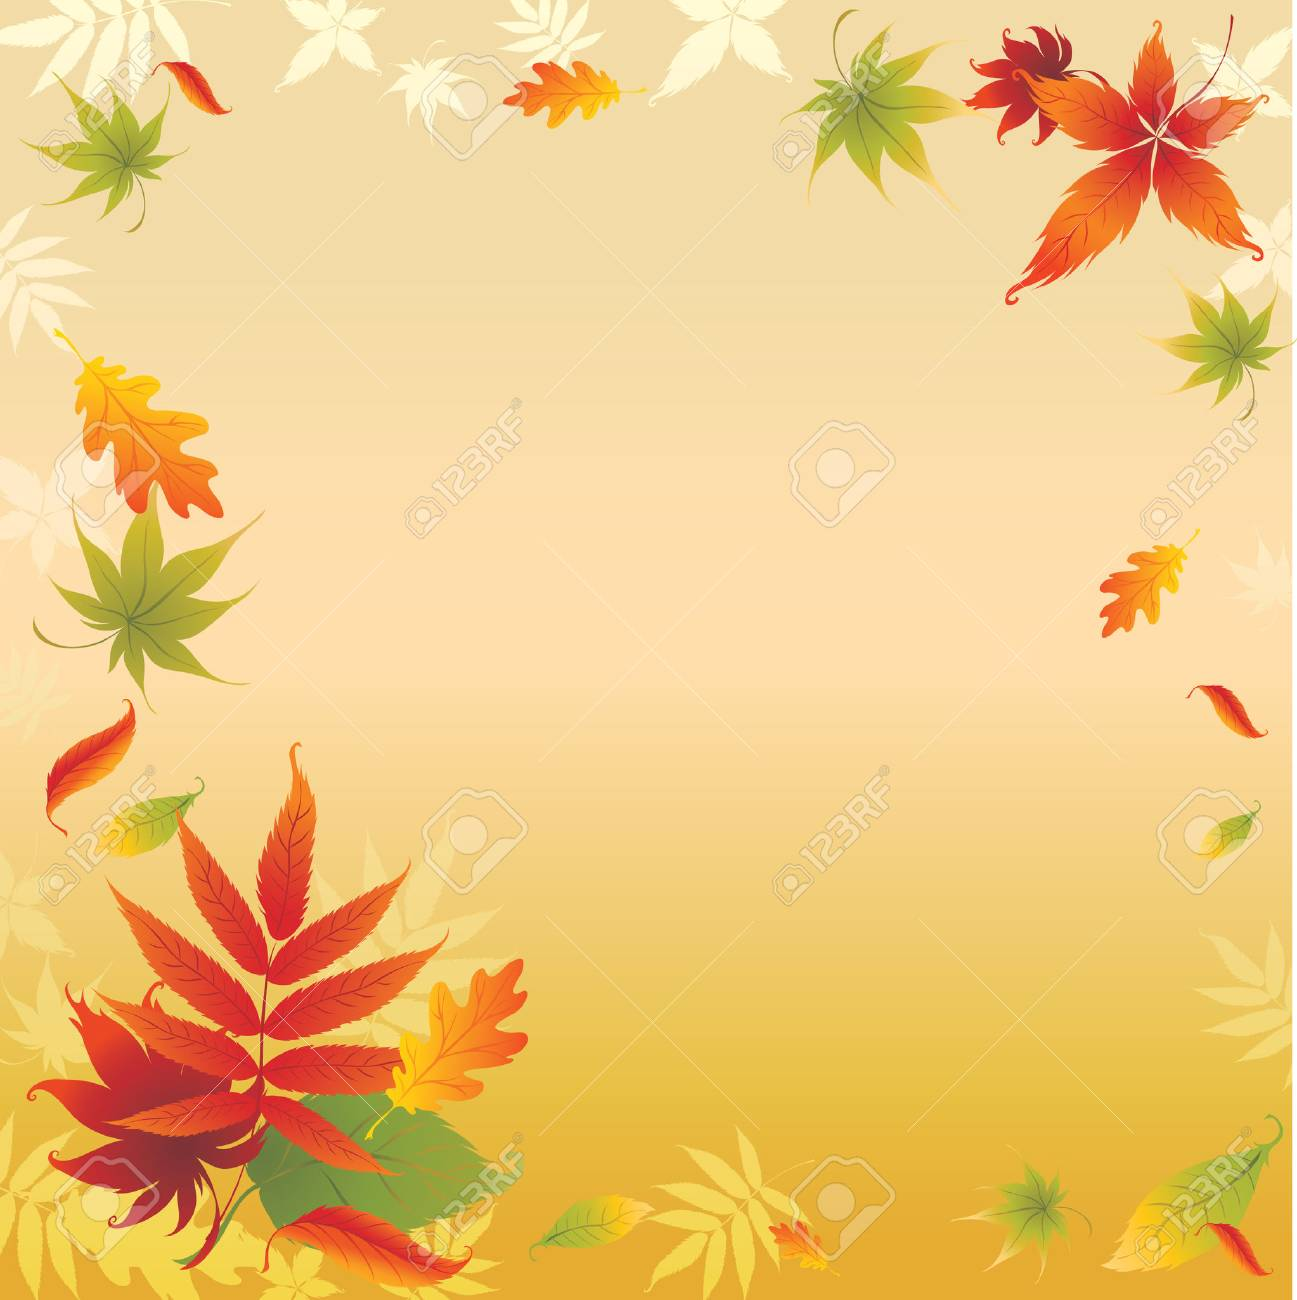 Grunge vector background with colorful Autumn Leaves. Thanksgiving Stock Vector - 5373270